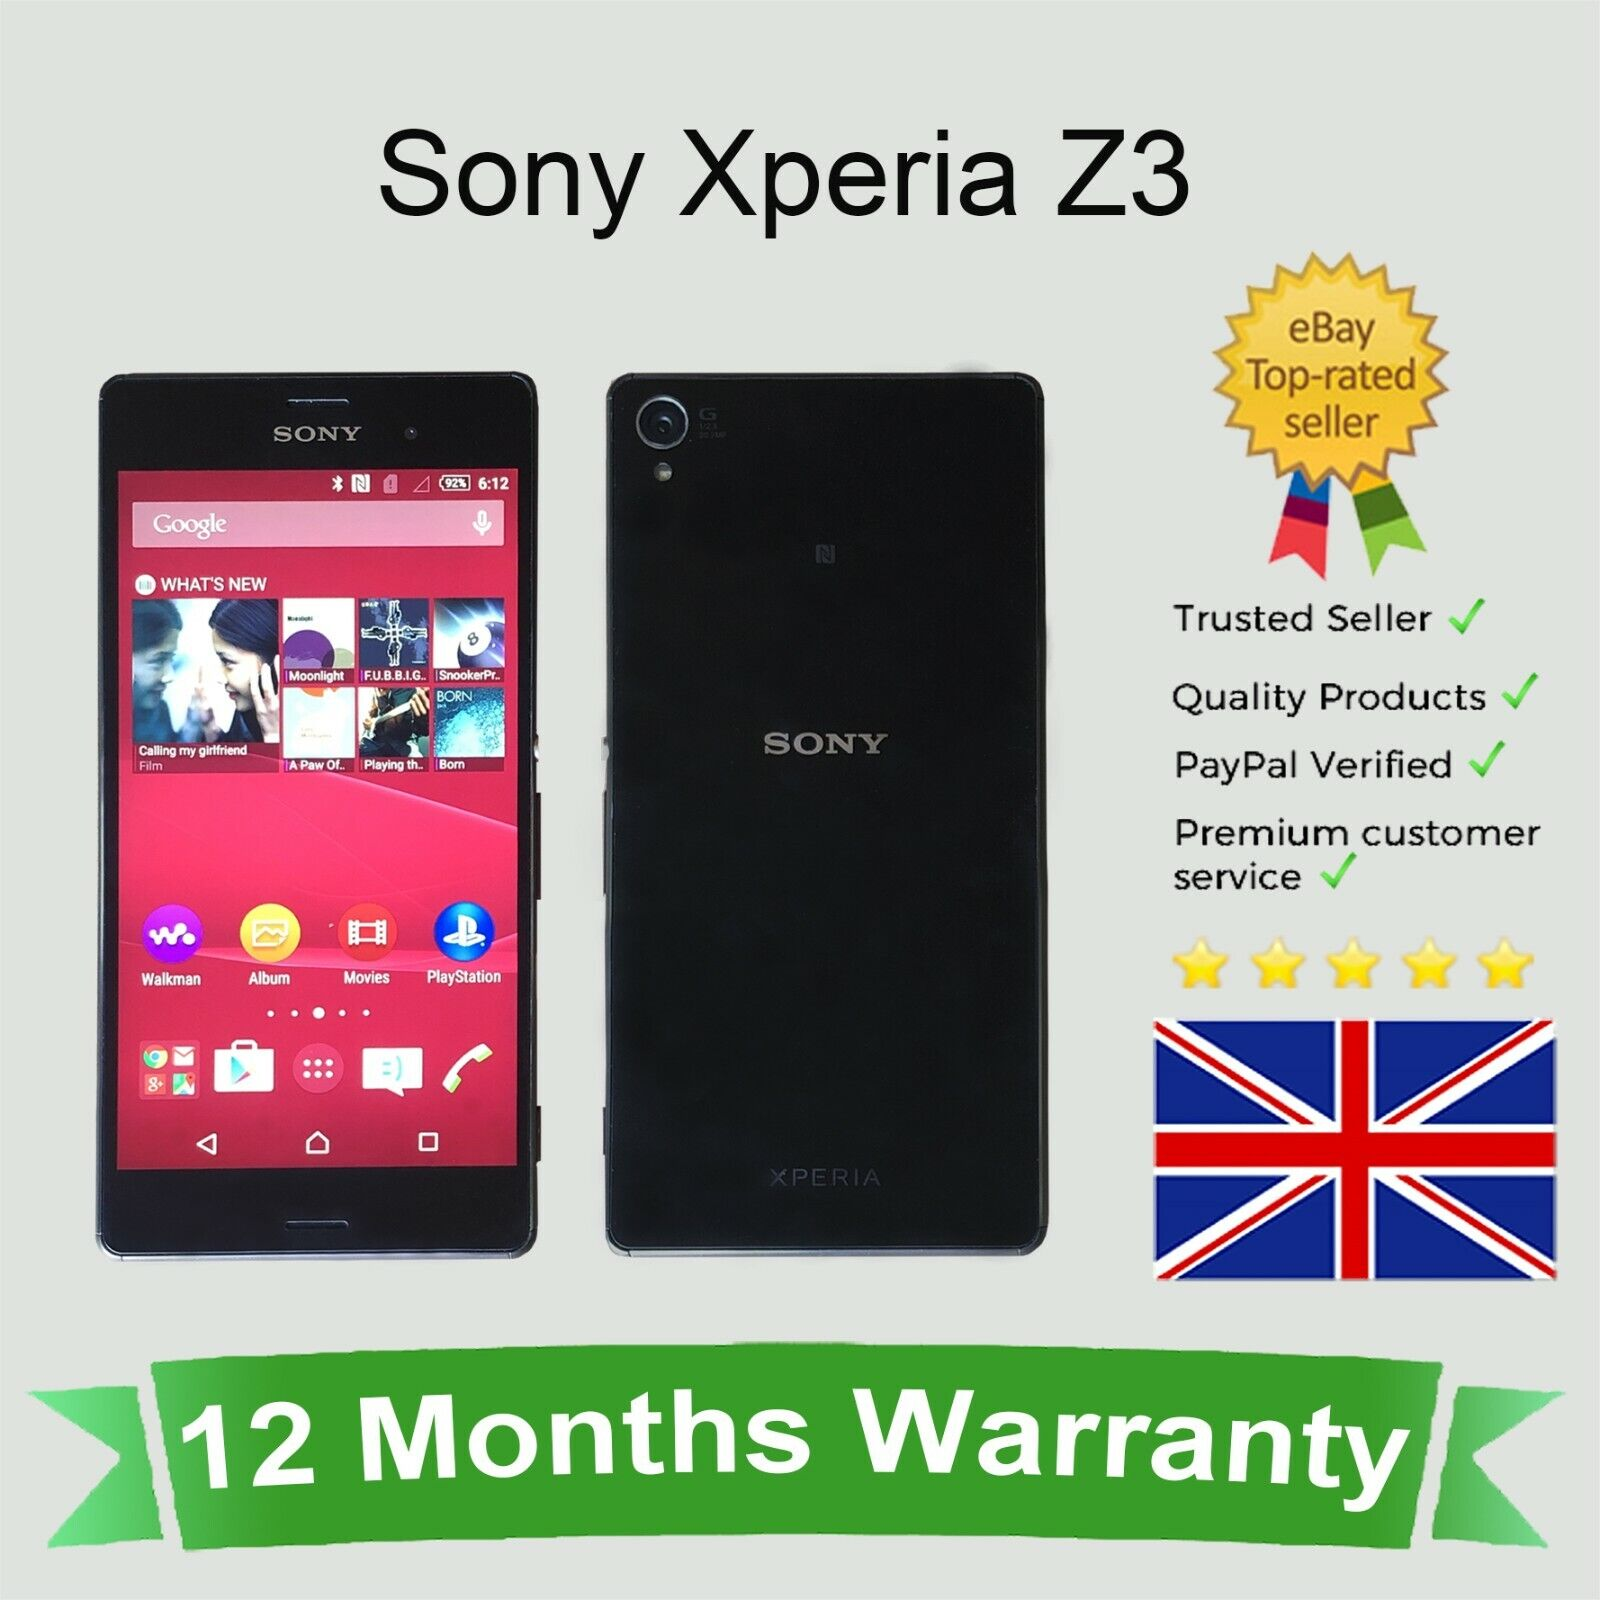 Android Phone - Unlocked Sony Xperia Z3 Android Mobile Smart Phone D6603 16GB Black SIM FREE